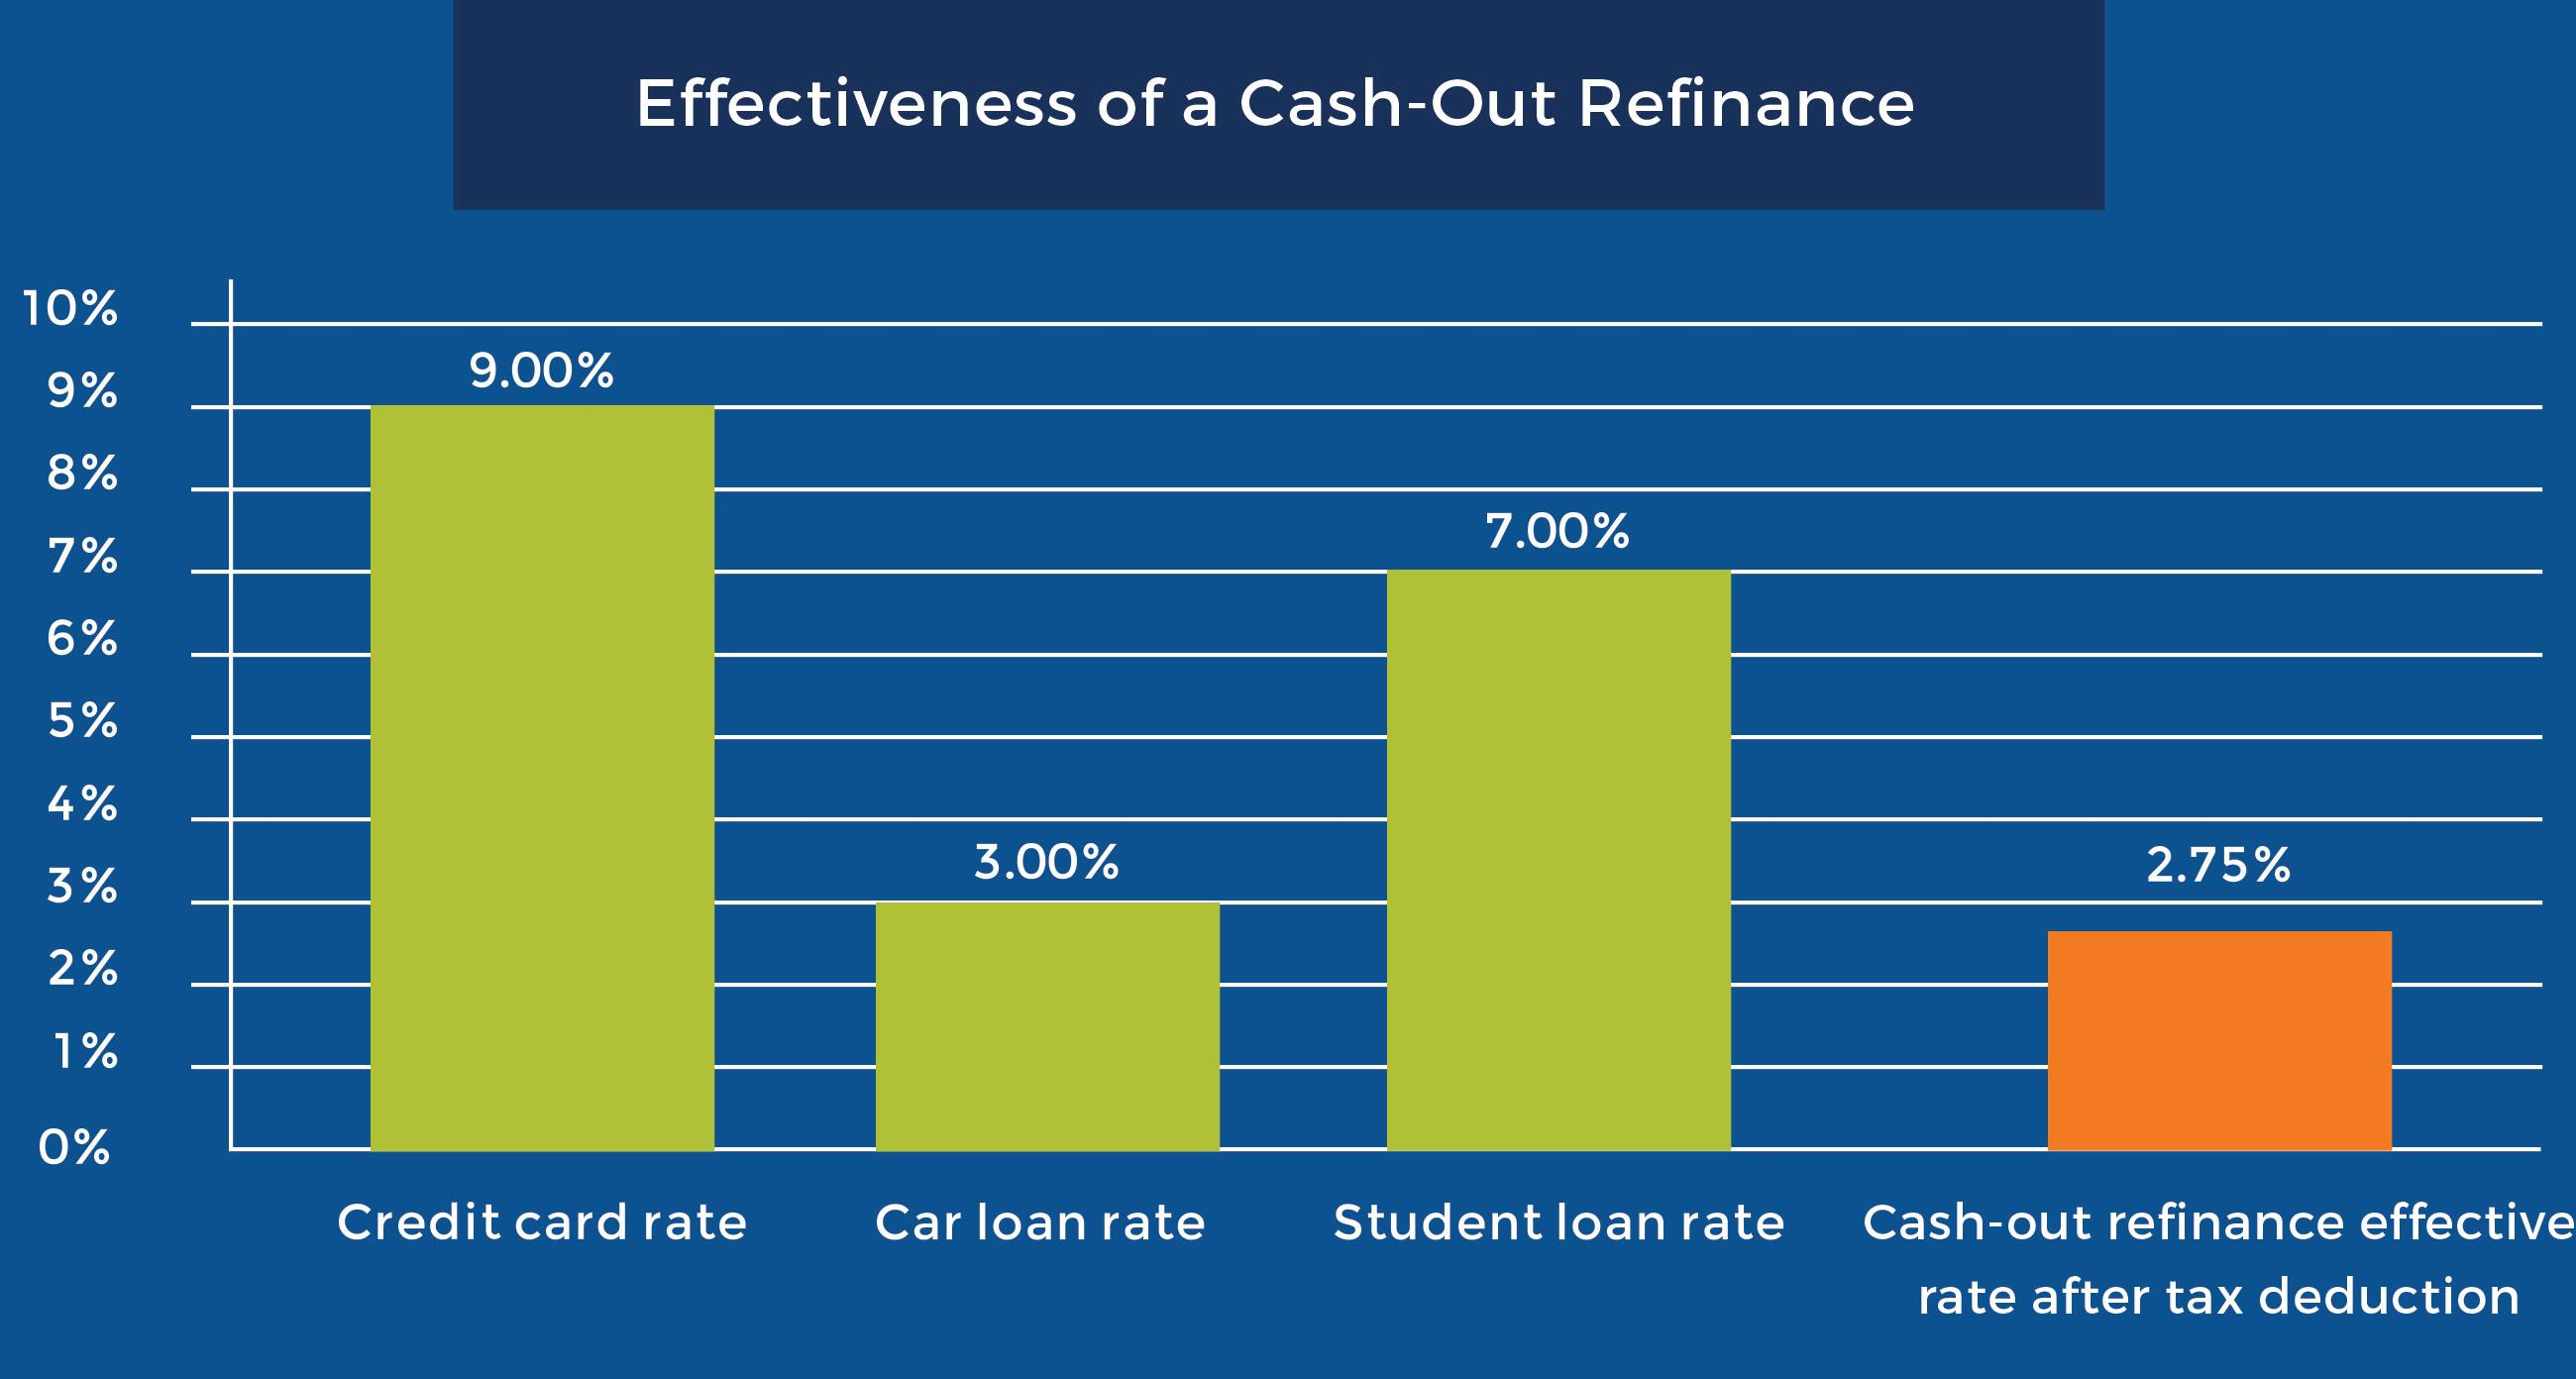 effectiveness of a cash-out refinance